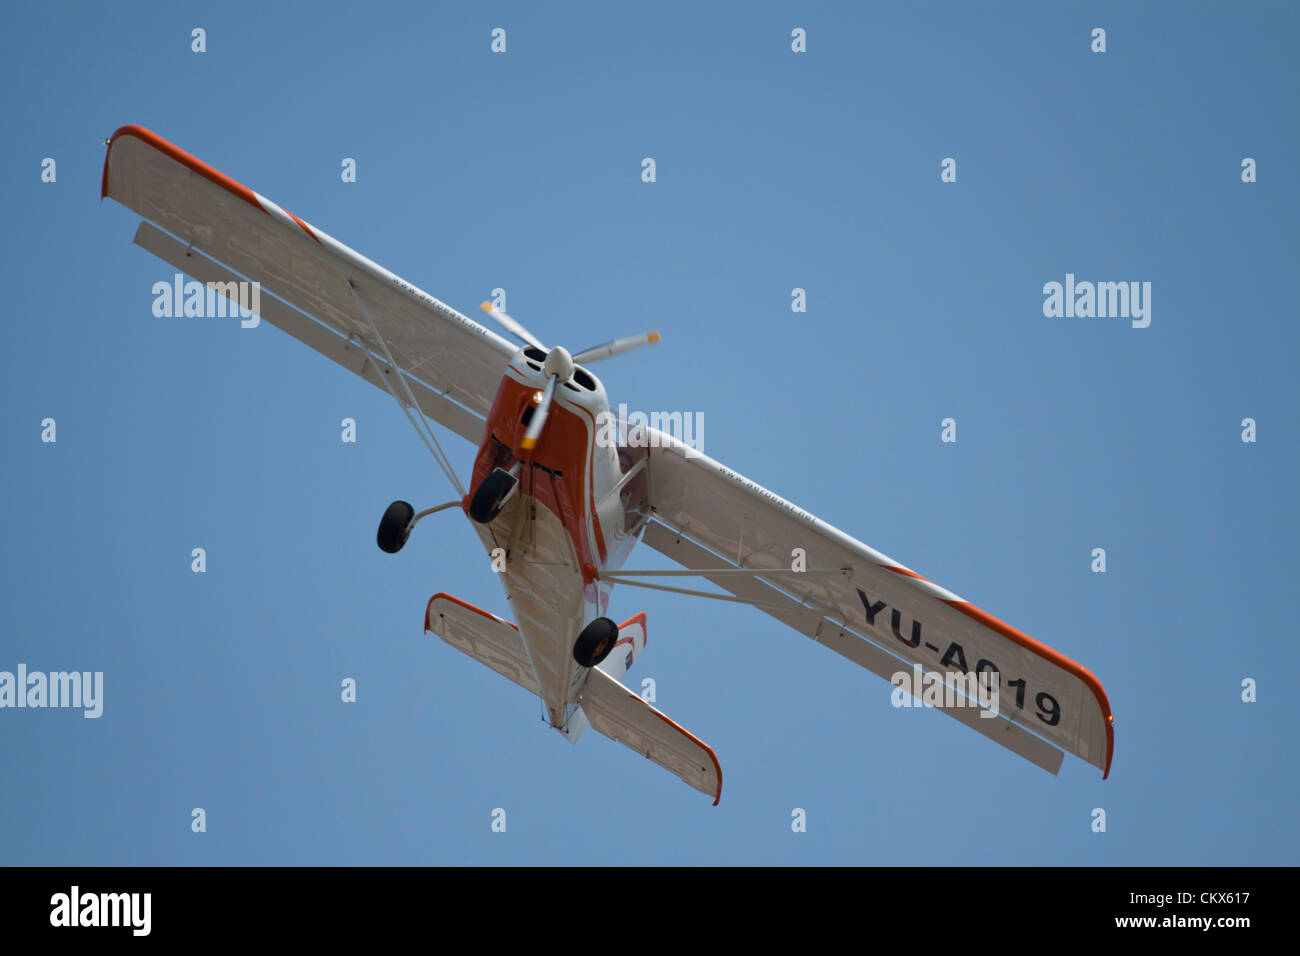 Lesnovo, Bulgaria; 24th Aug 2012. This MXP light aircraft came over from Serbia to participate in the air show. - Stock Image